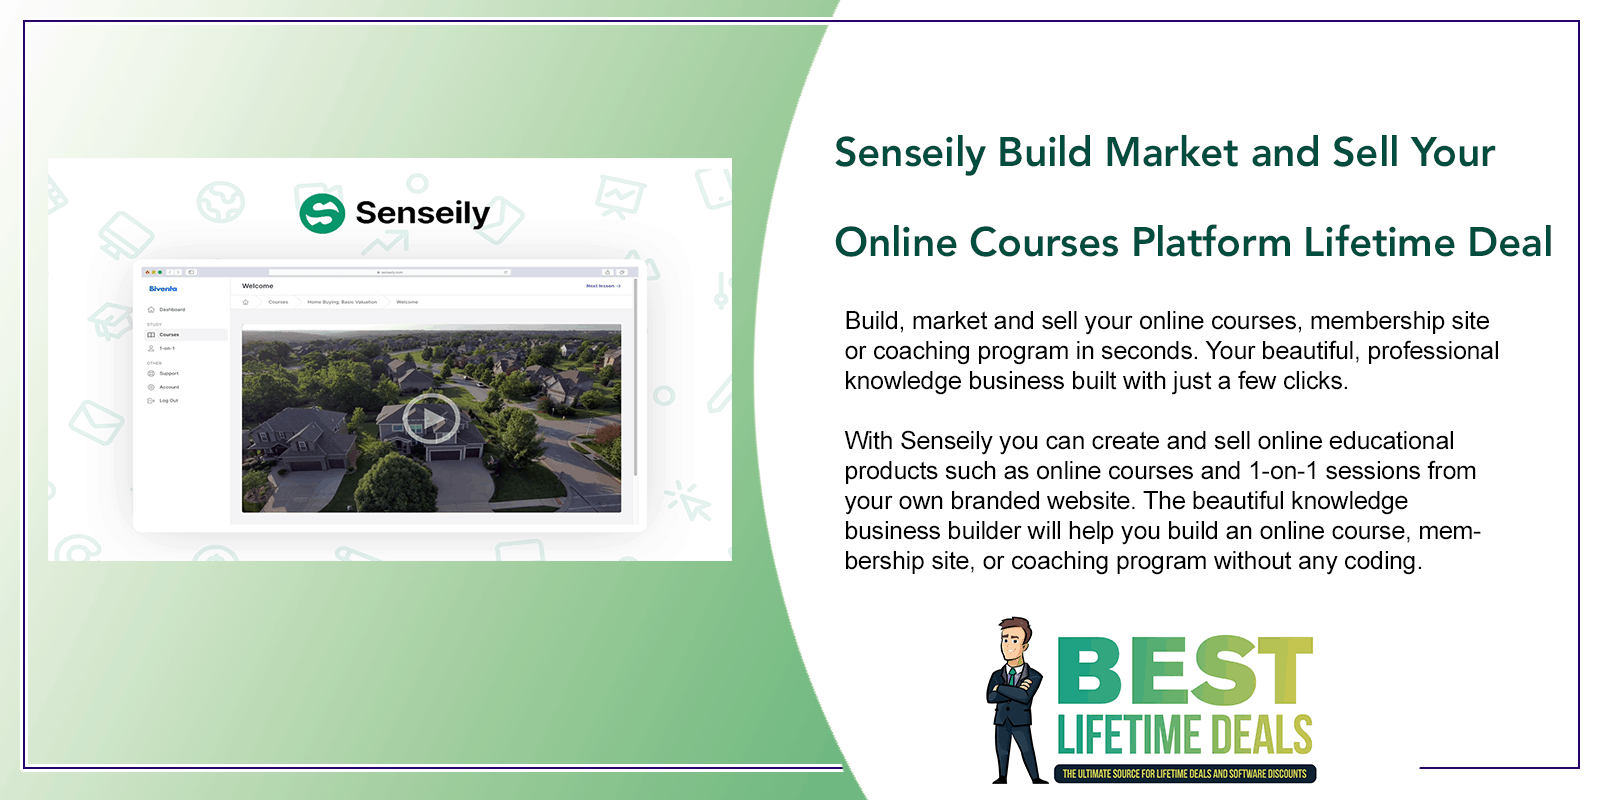 Senseily Build Market and Sell Your Online Courses Platform Featured Image